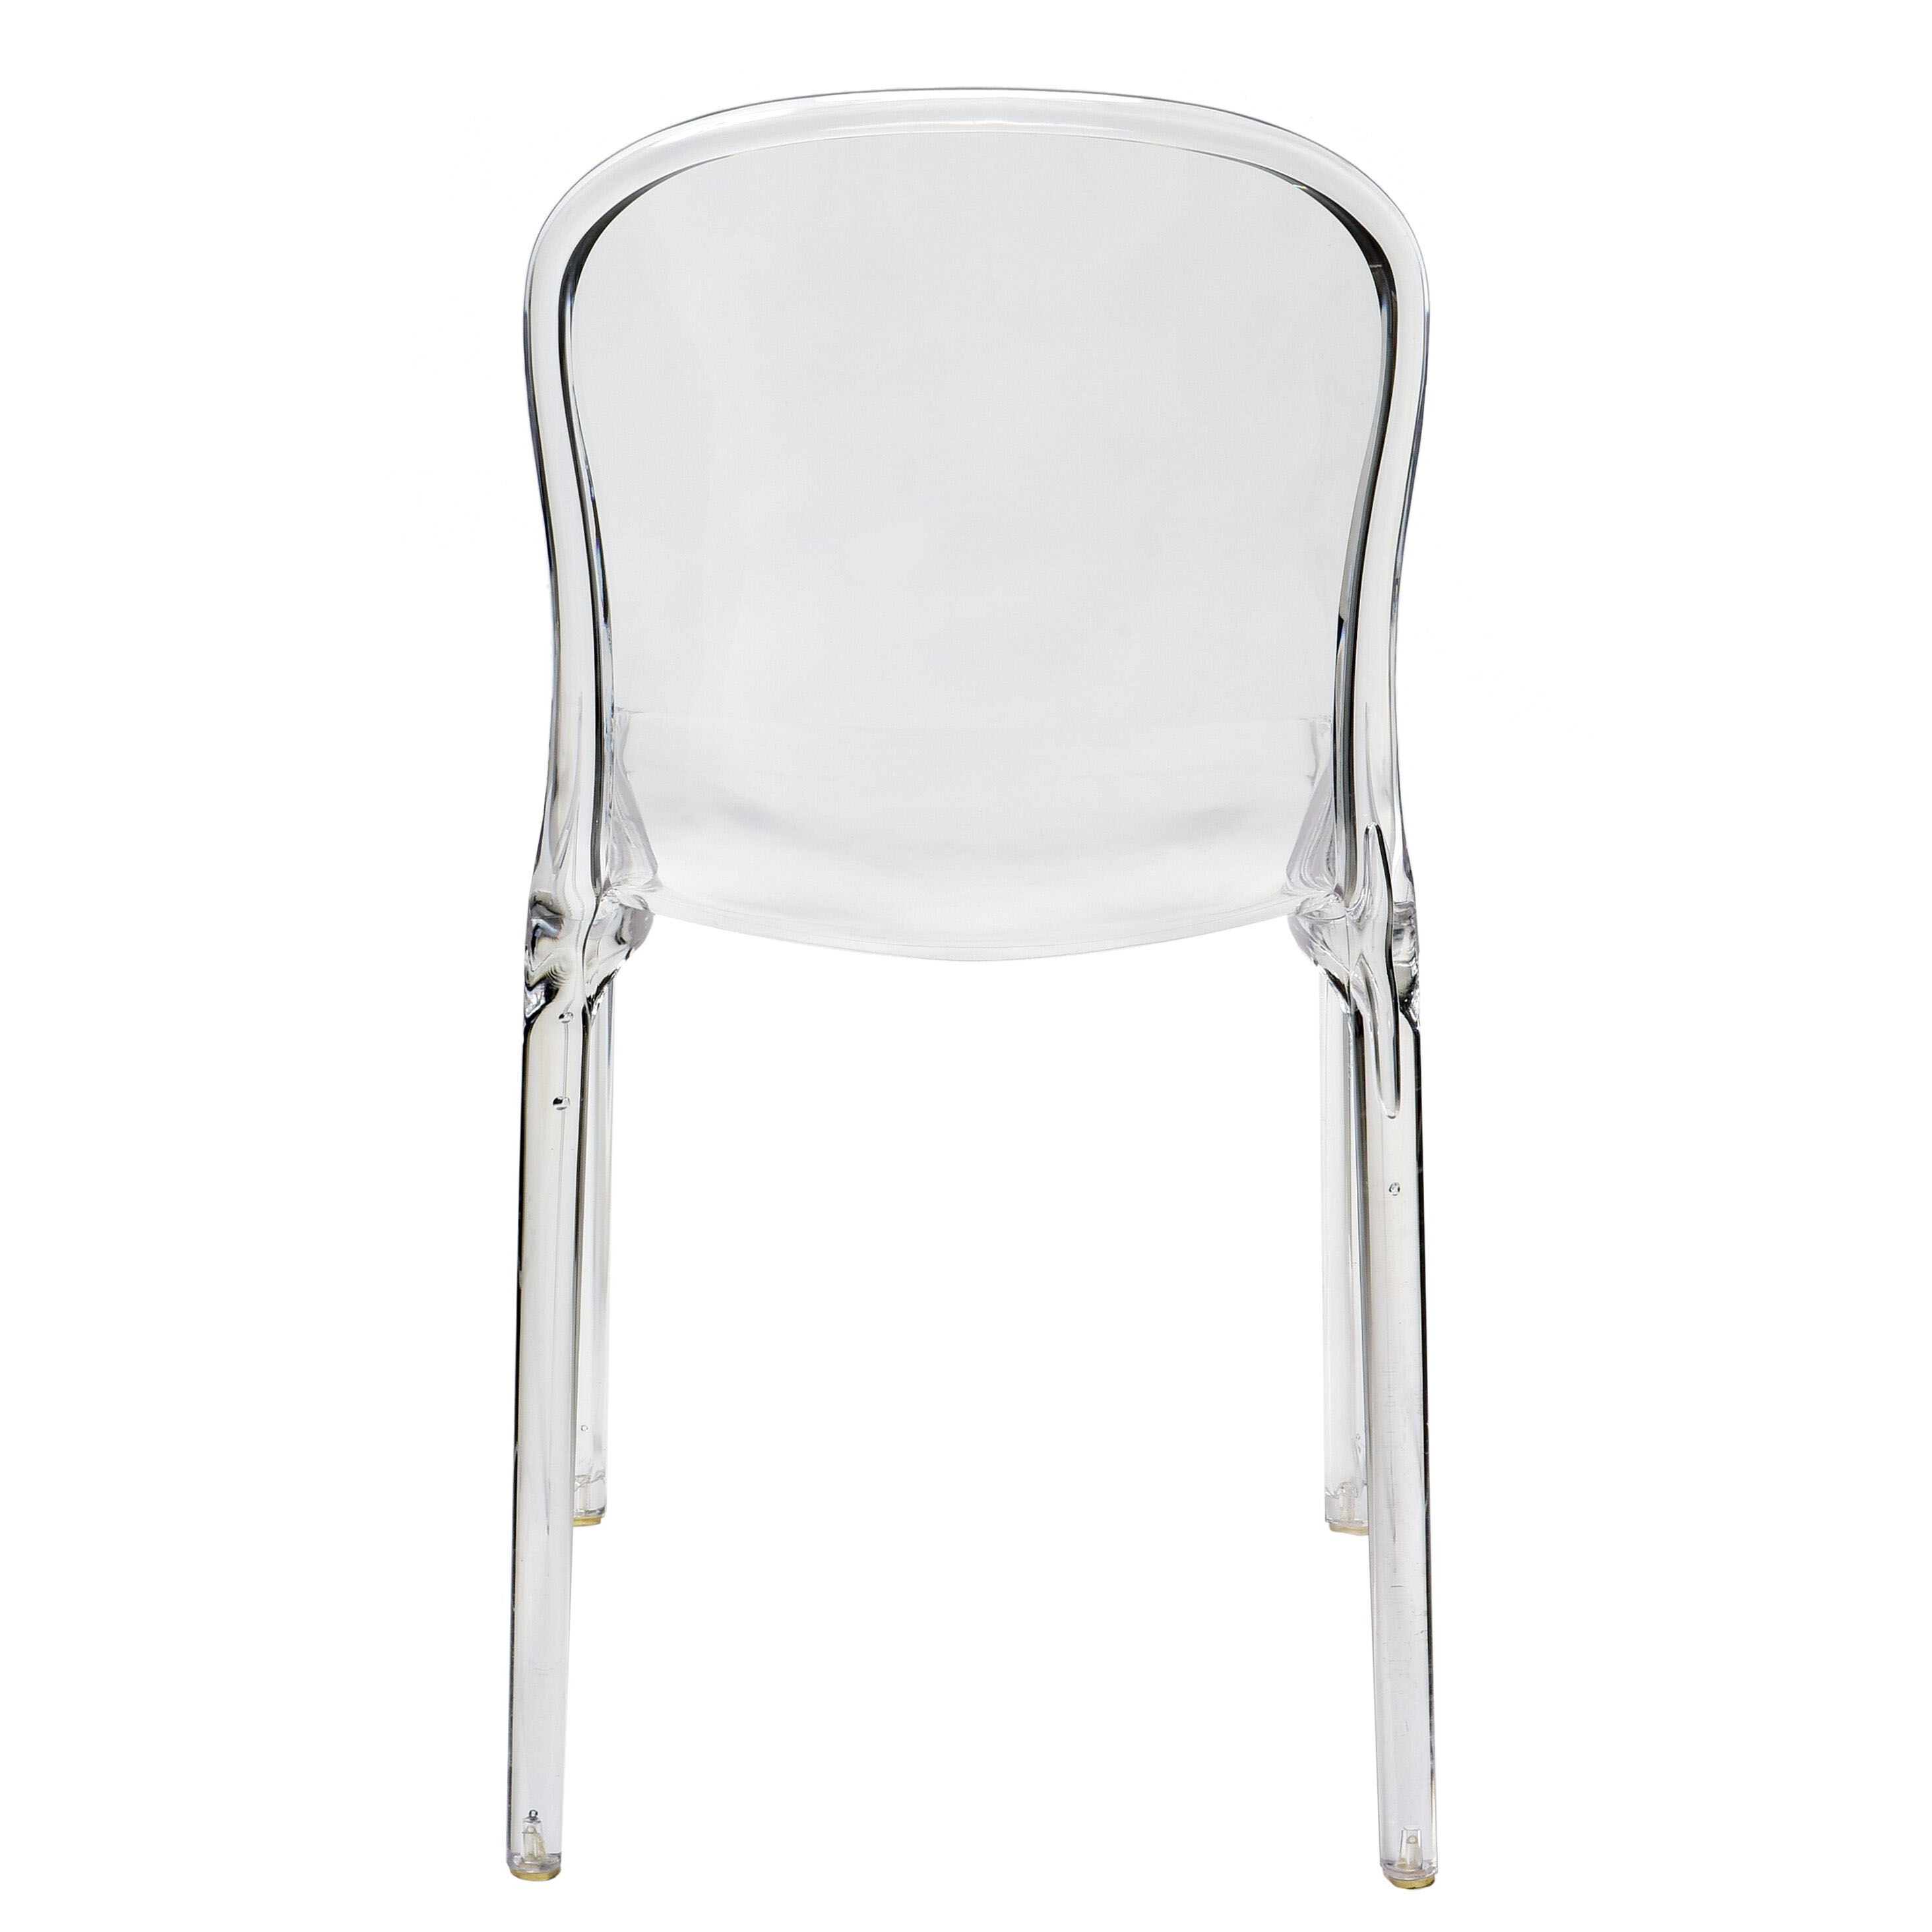 Our Genoa Polycarbonate Dining Chair   Clear Is On Sale Now.